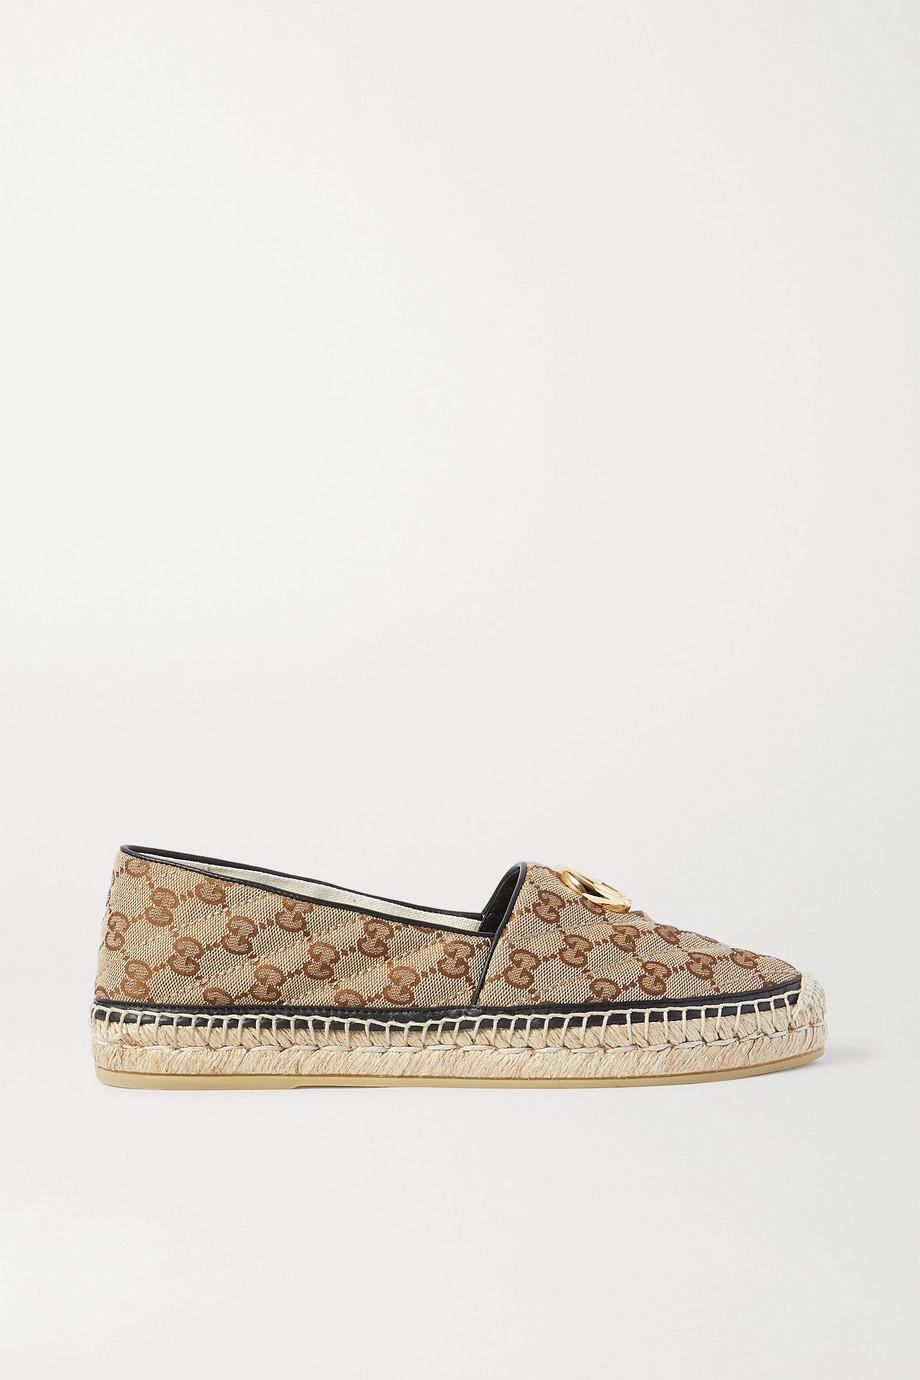 Gucci Pilar leather-trimmed embellished logo-detailed canvas espadrilles